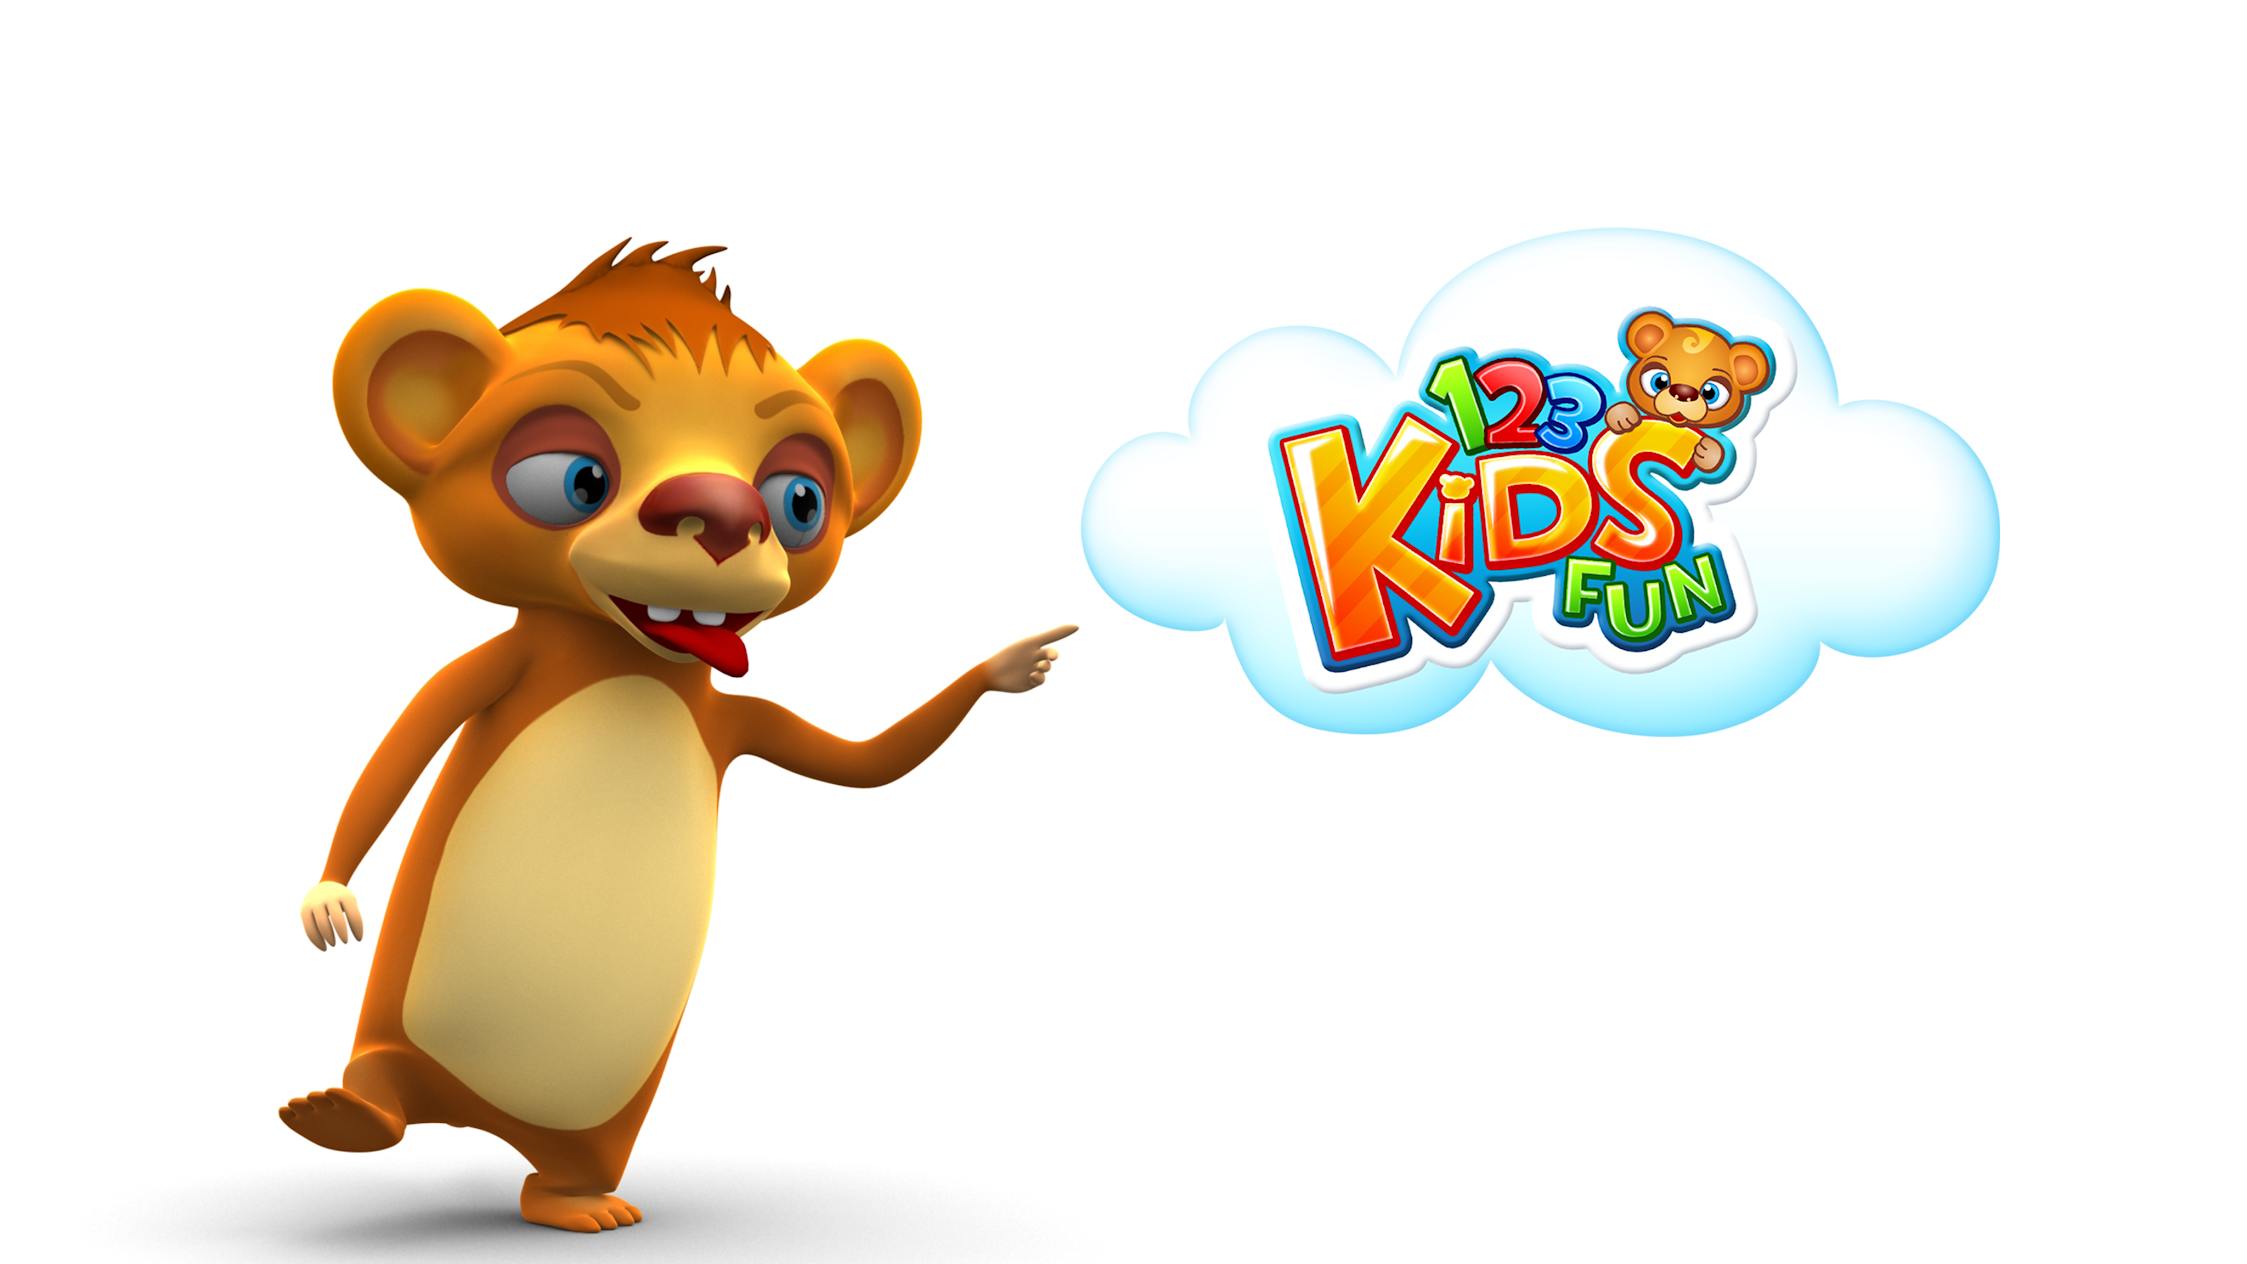 123 Kids Fun Apps - Educational apps for Kids